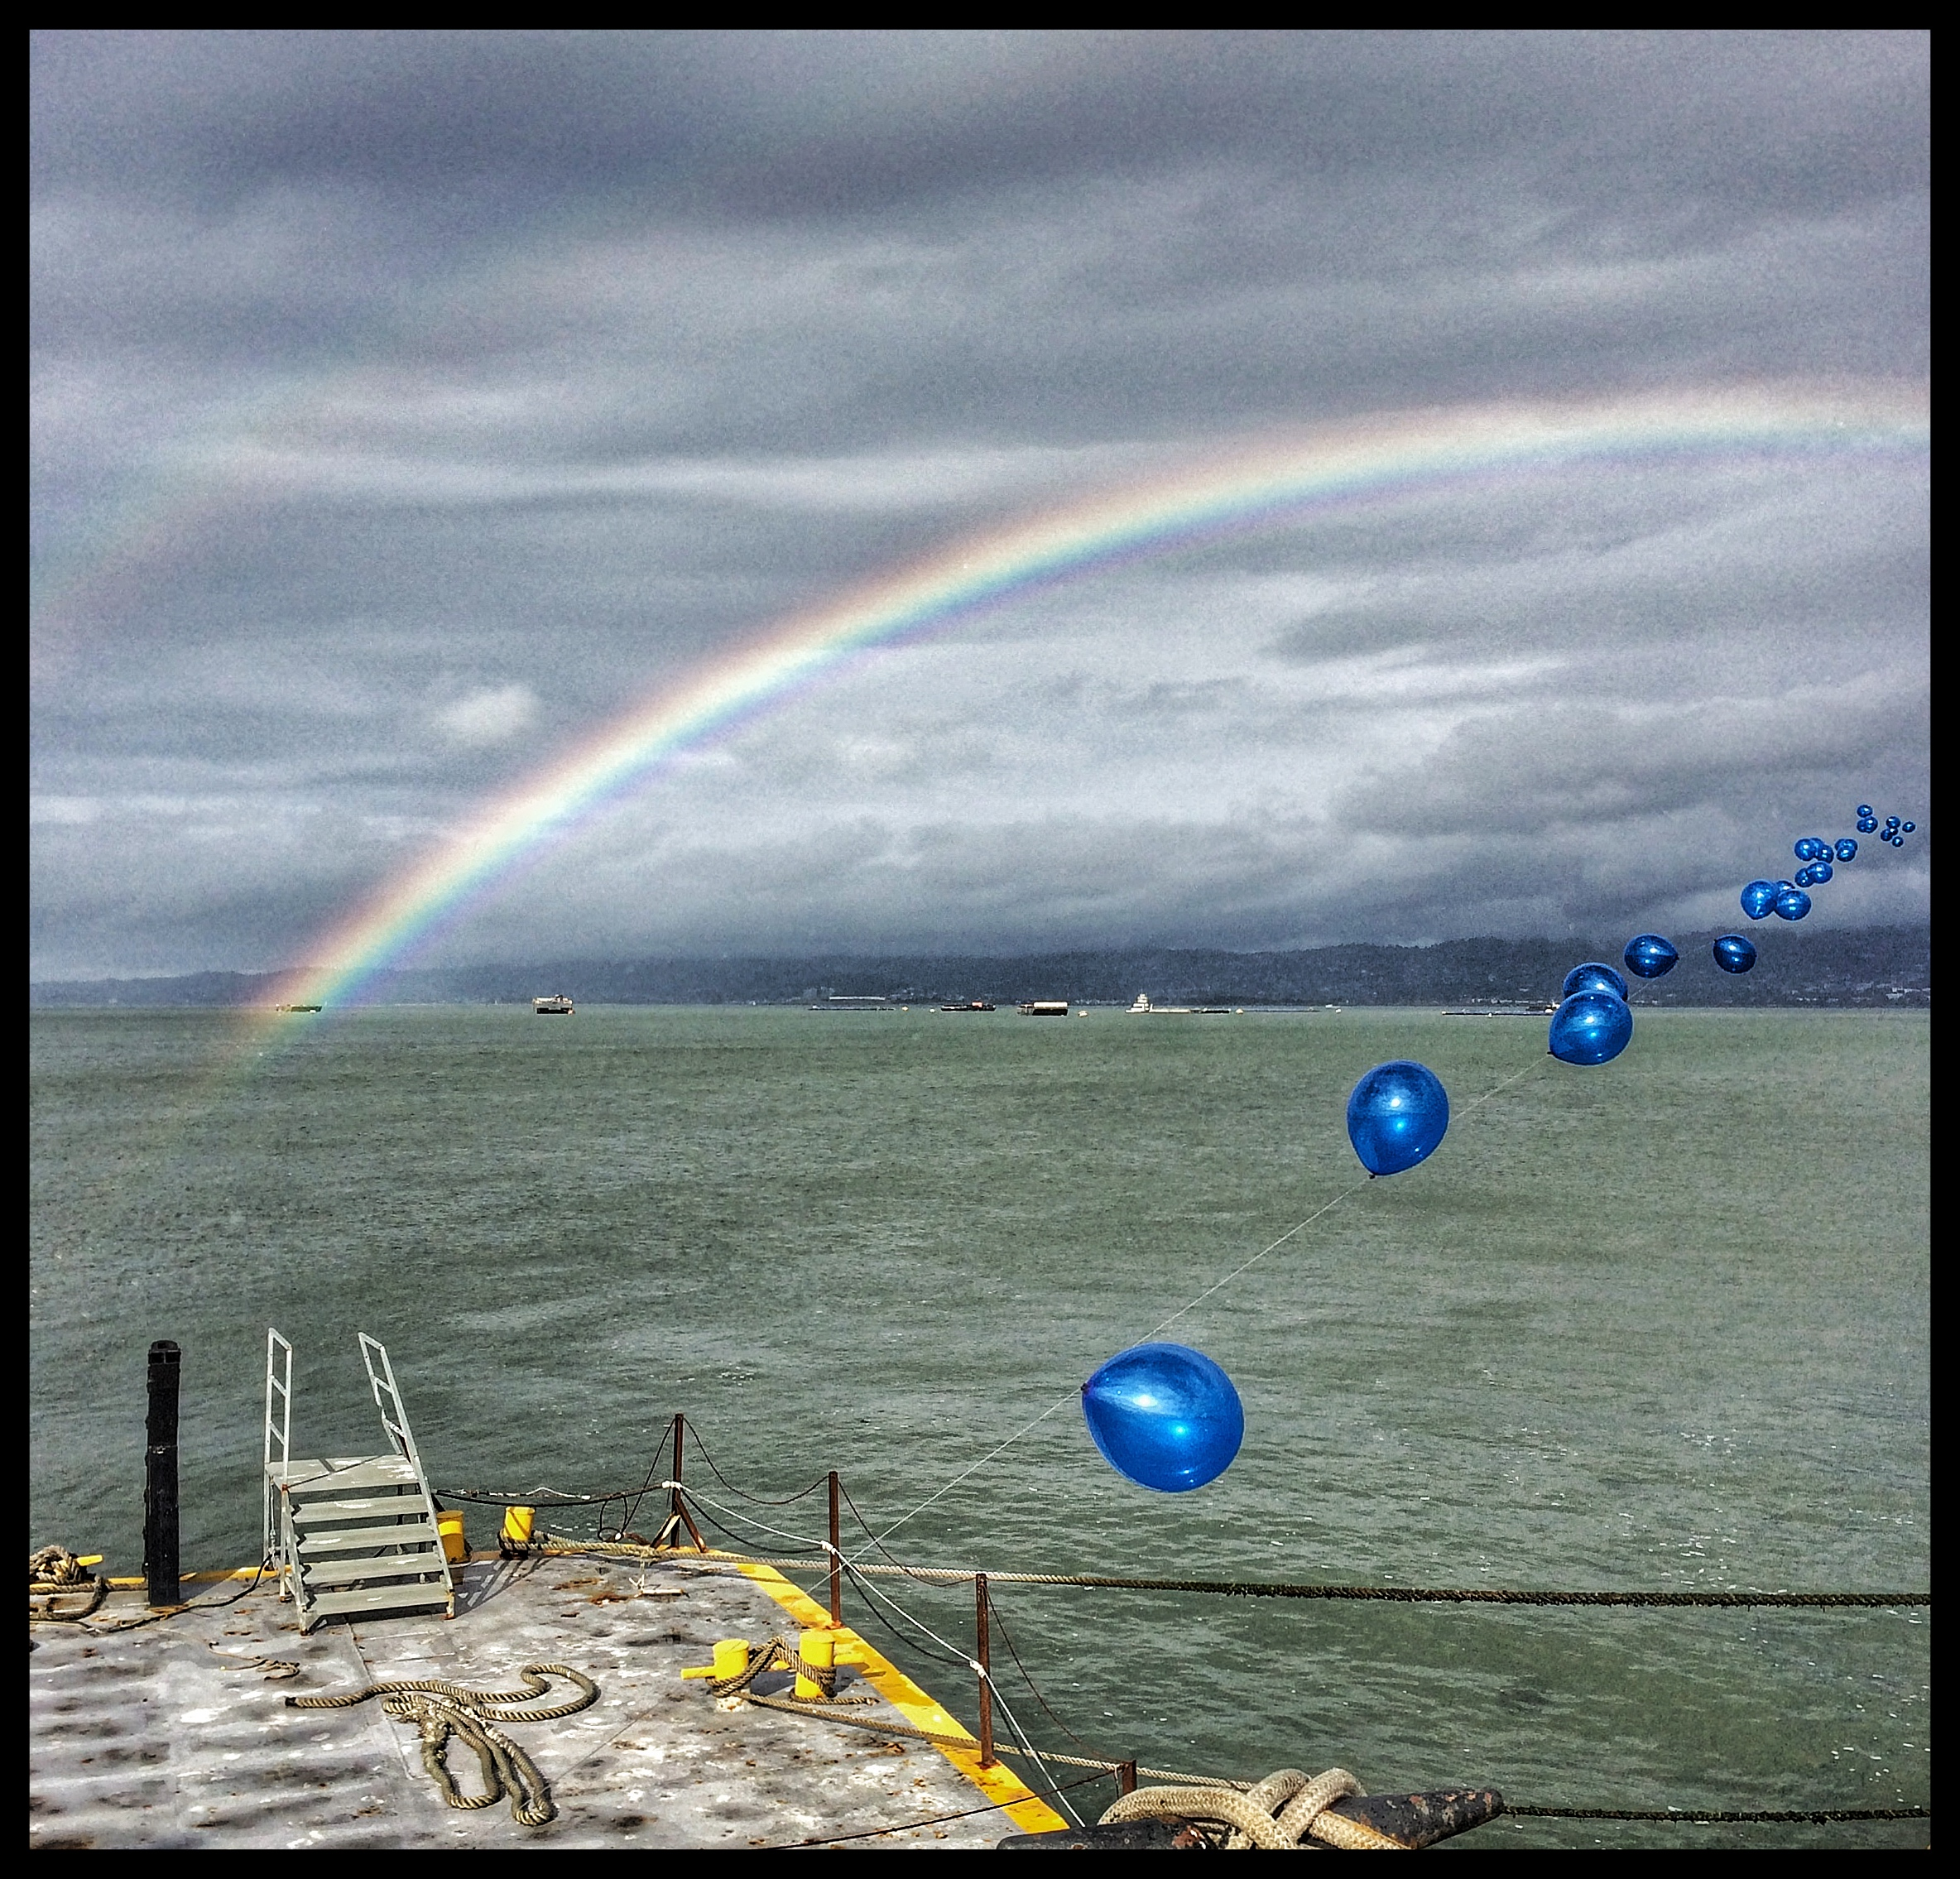 Double Rainbows and Blue Balloons